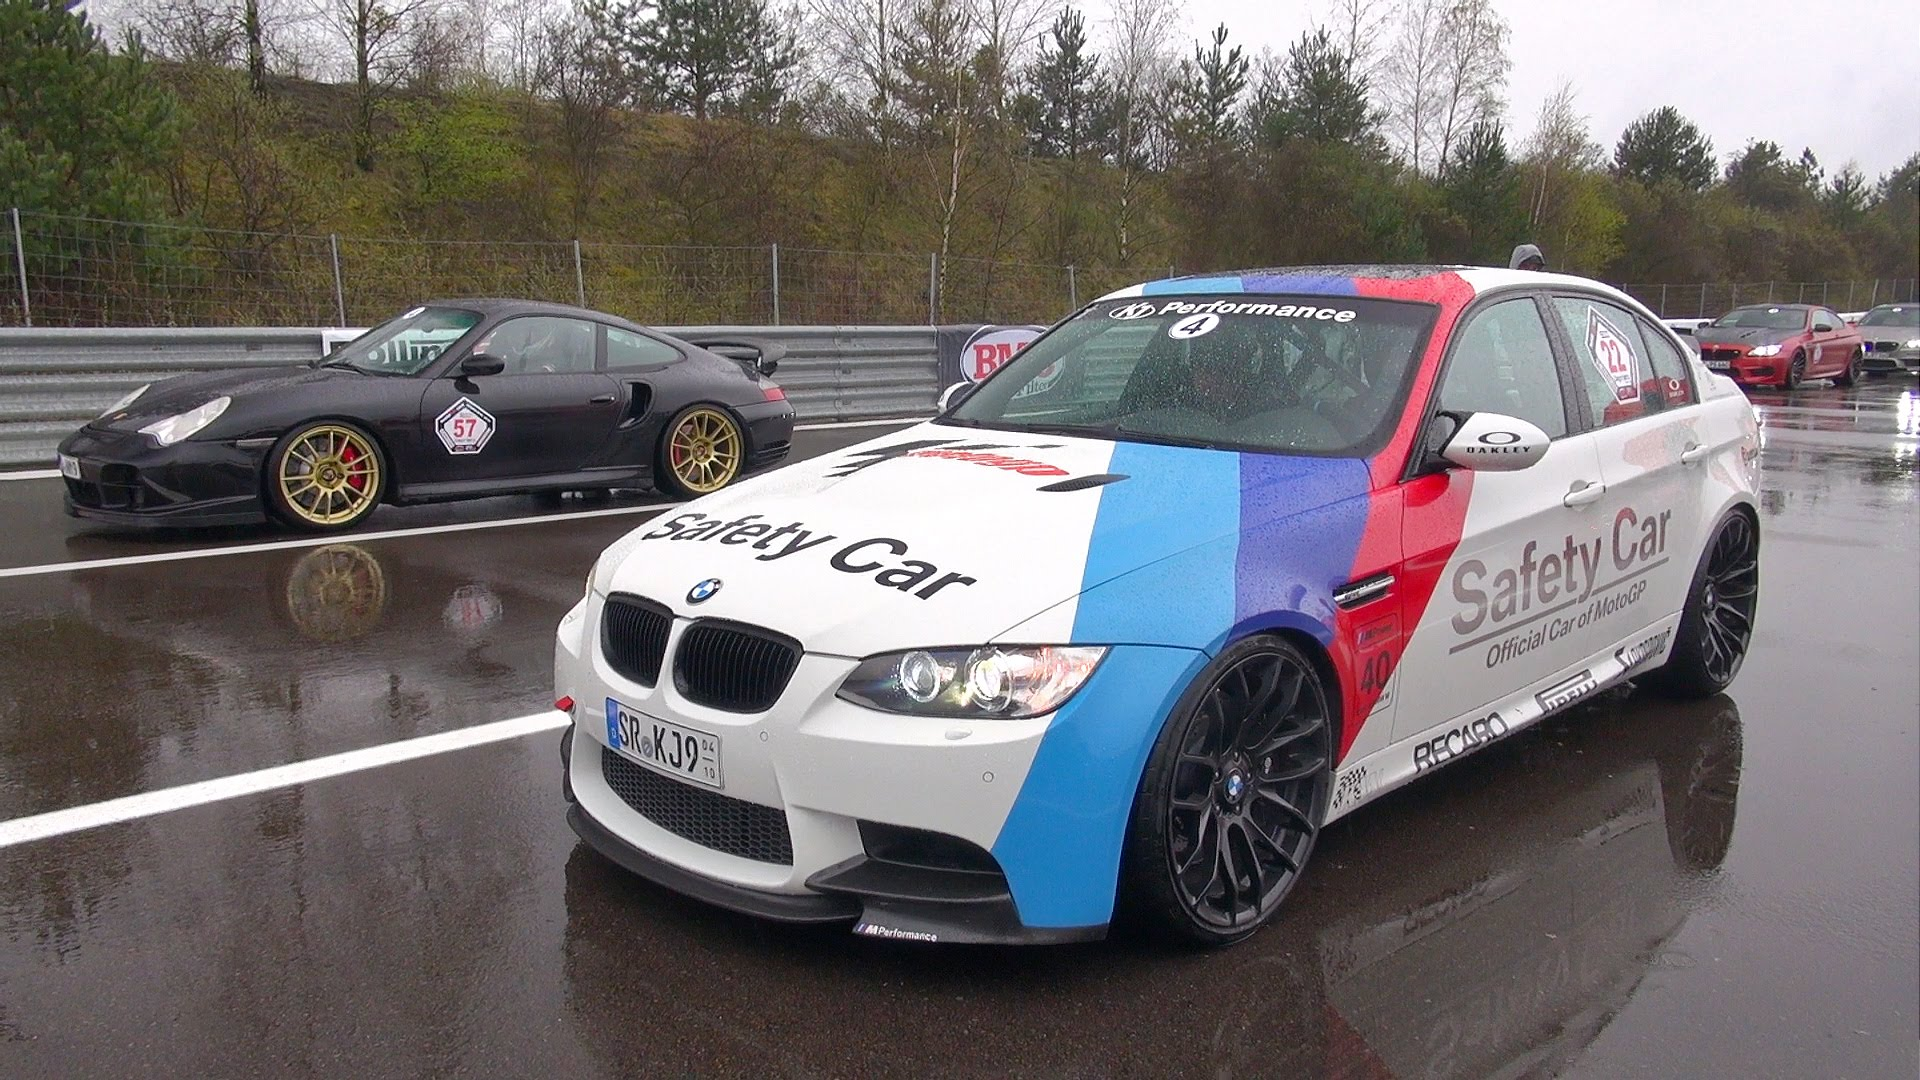 G-POWER BMW M3 E90 With Supercharger Whistle Sound!